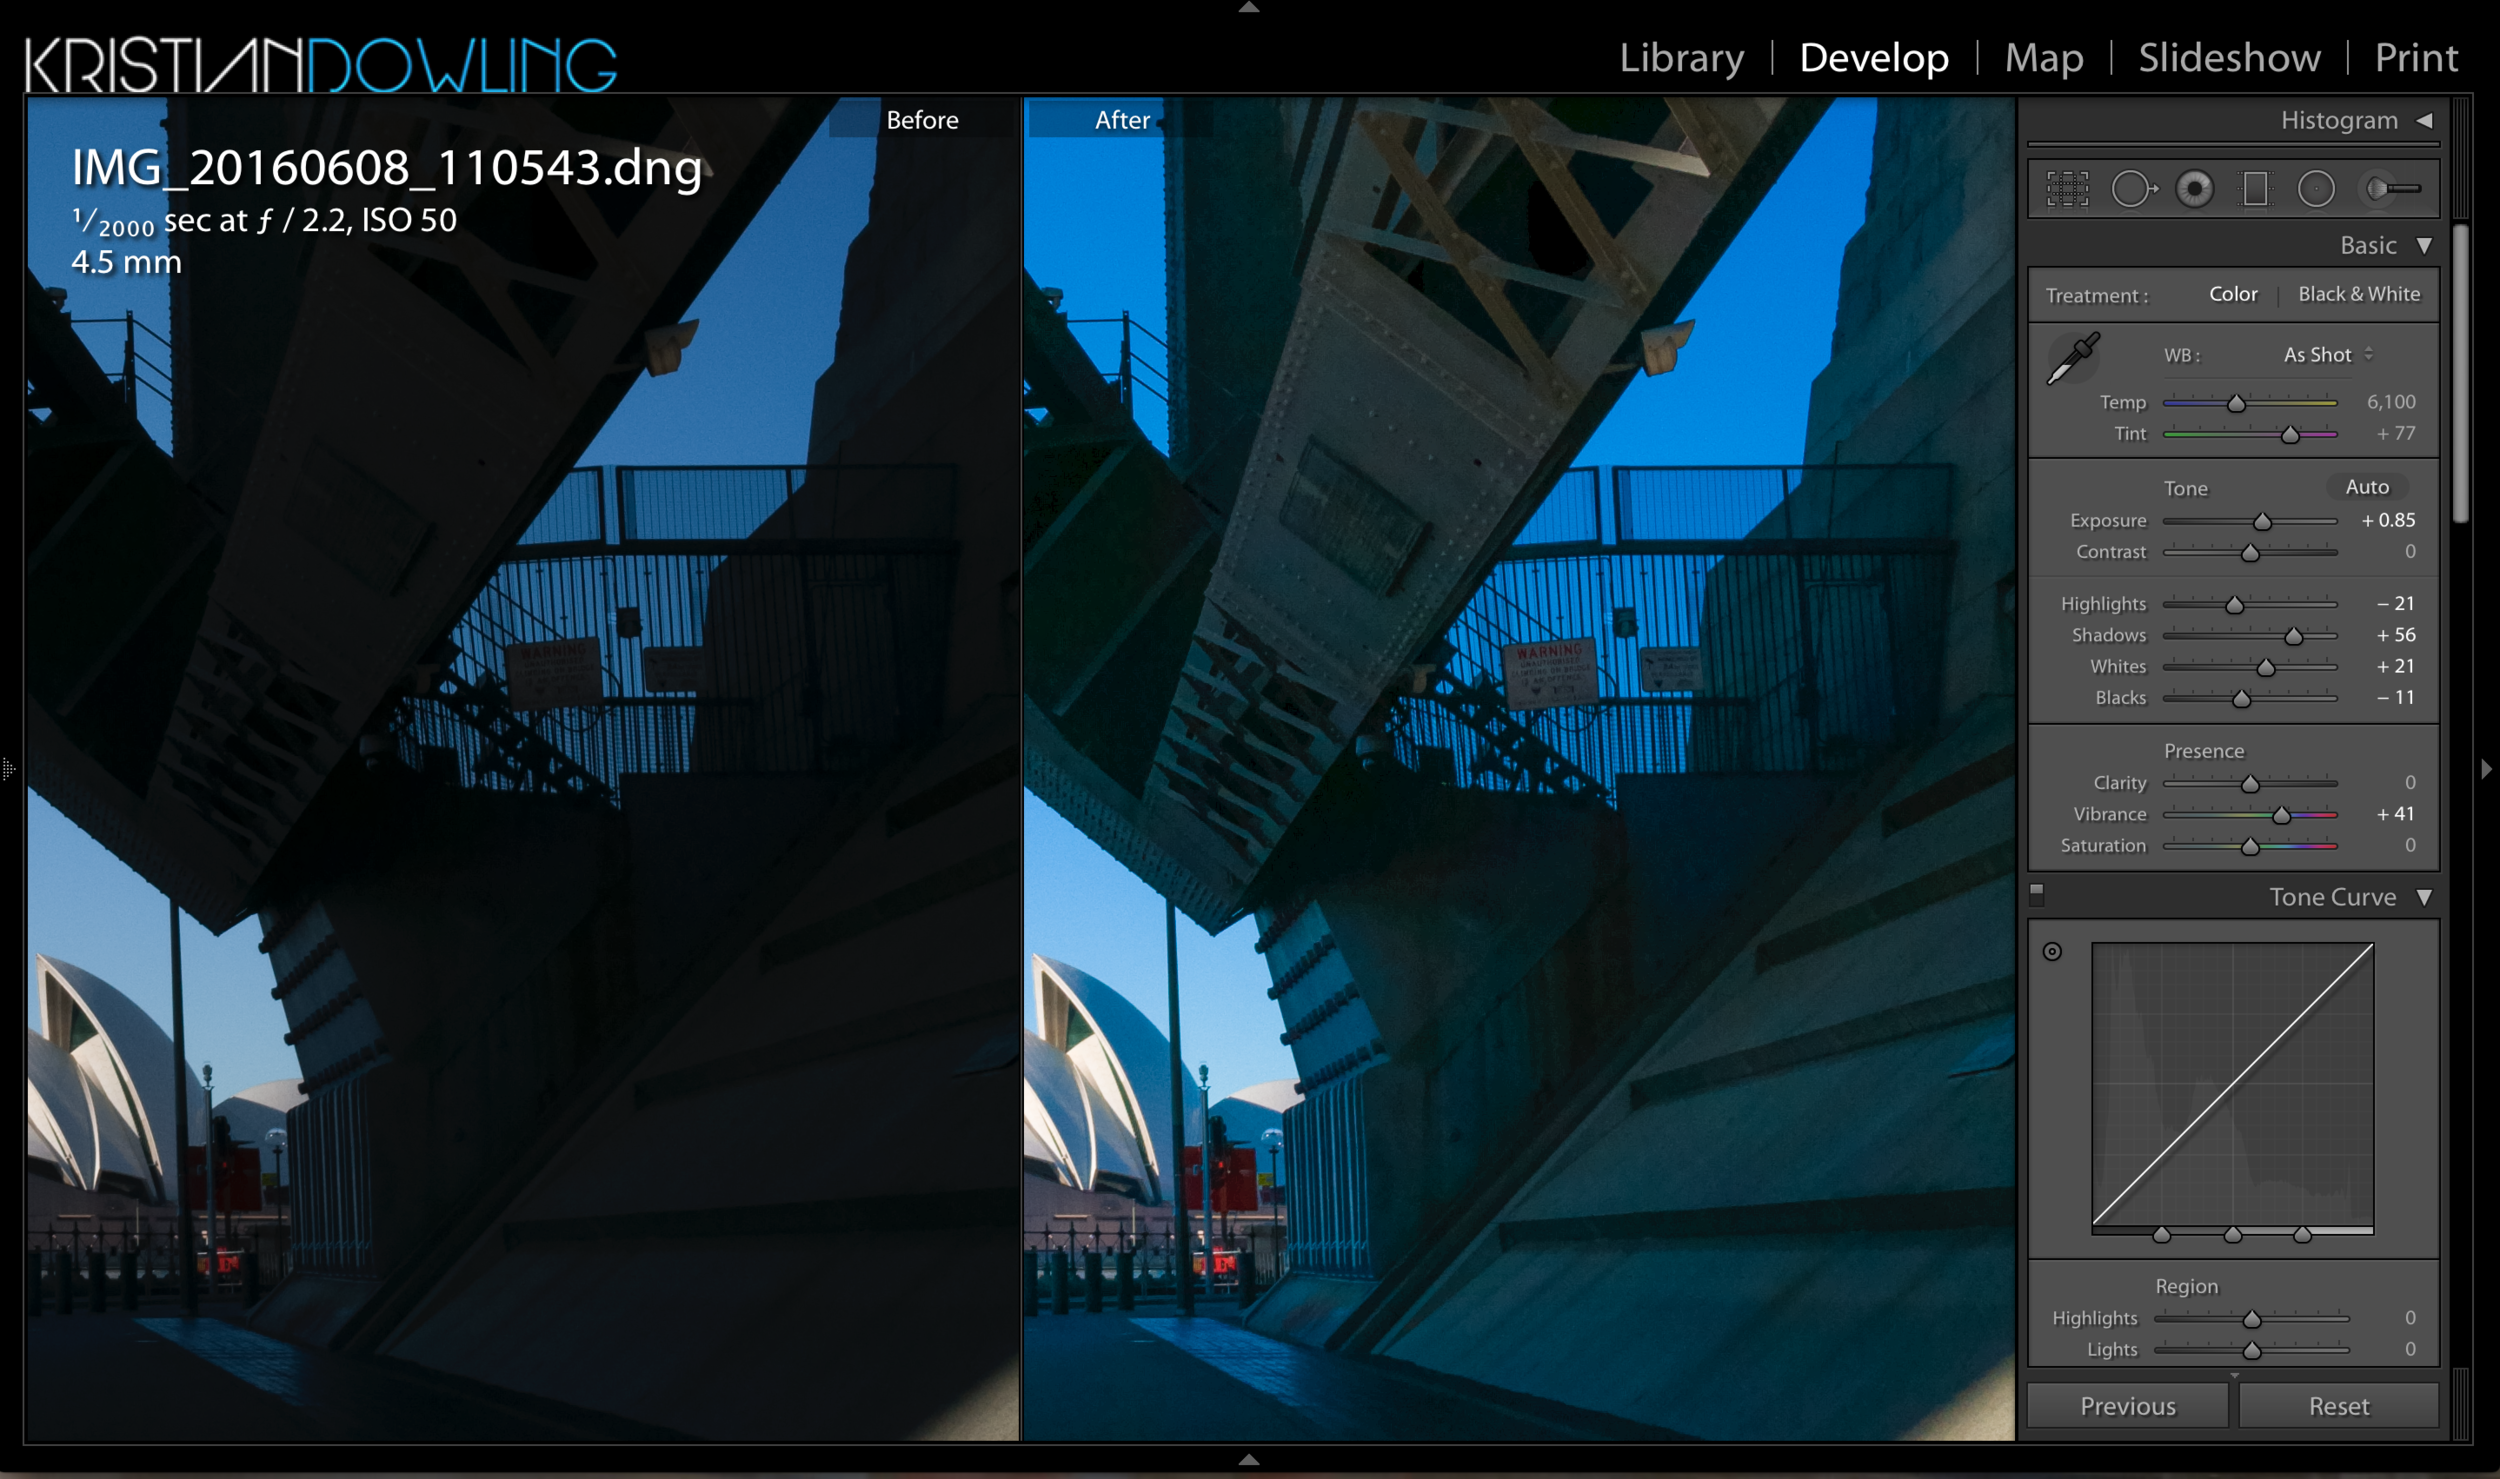 Lots of shadow detail to be found under the shadows of the DNG file